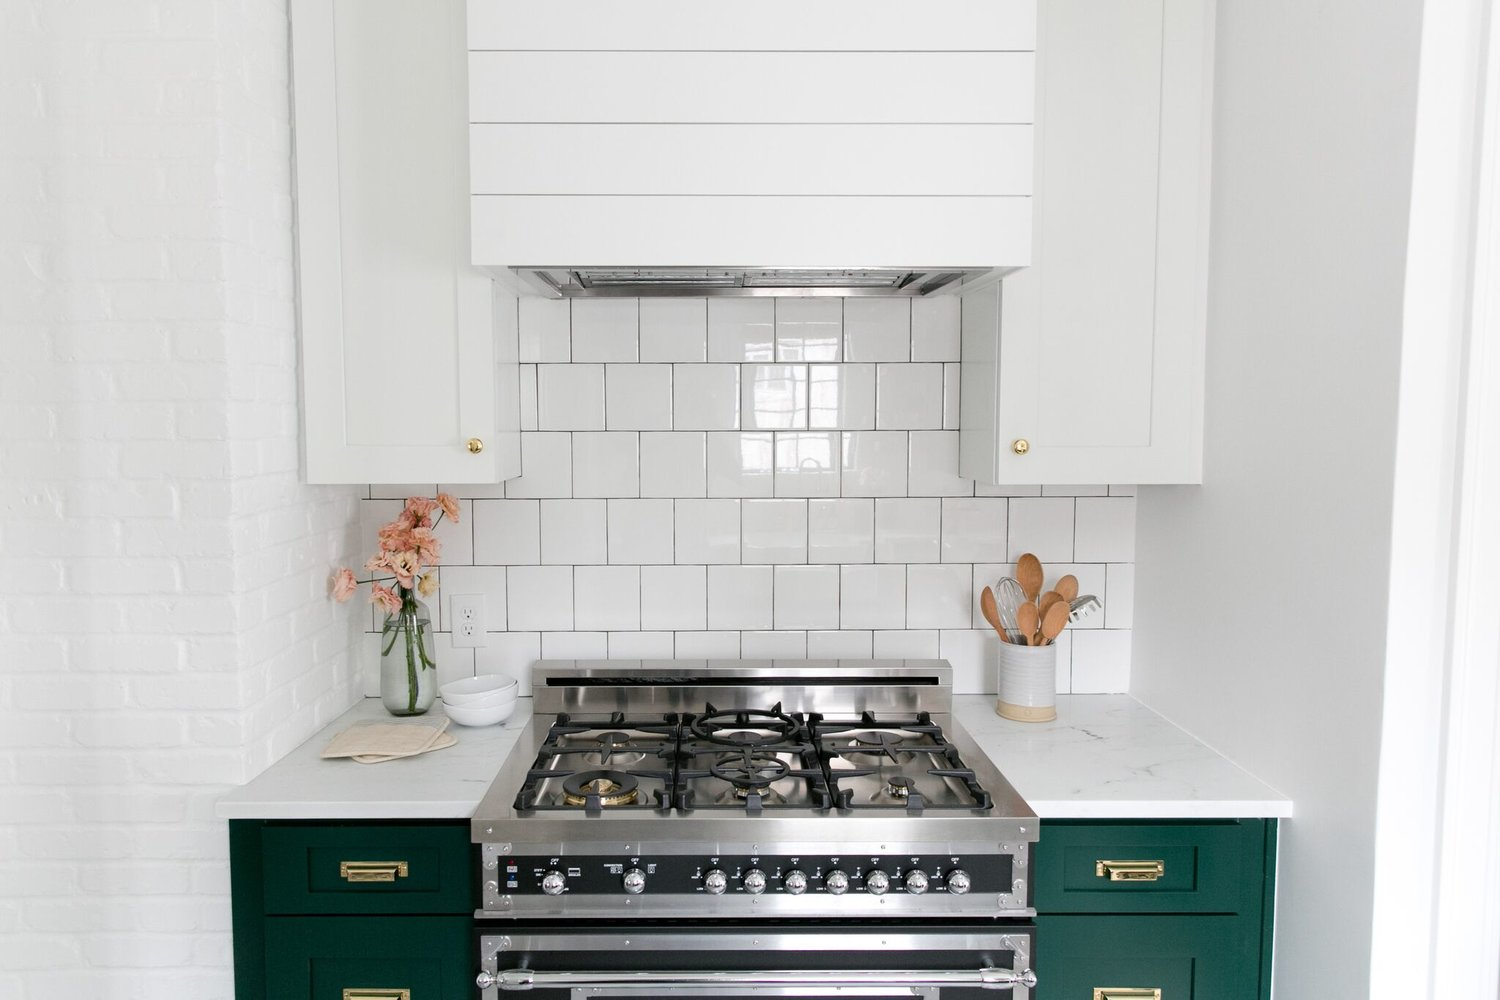 Open range oven against green cabinets in kitchen